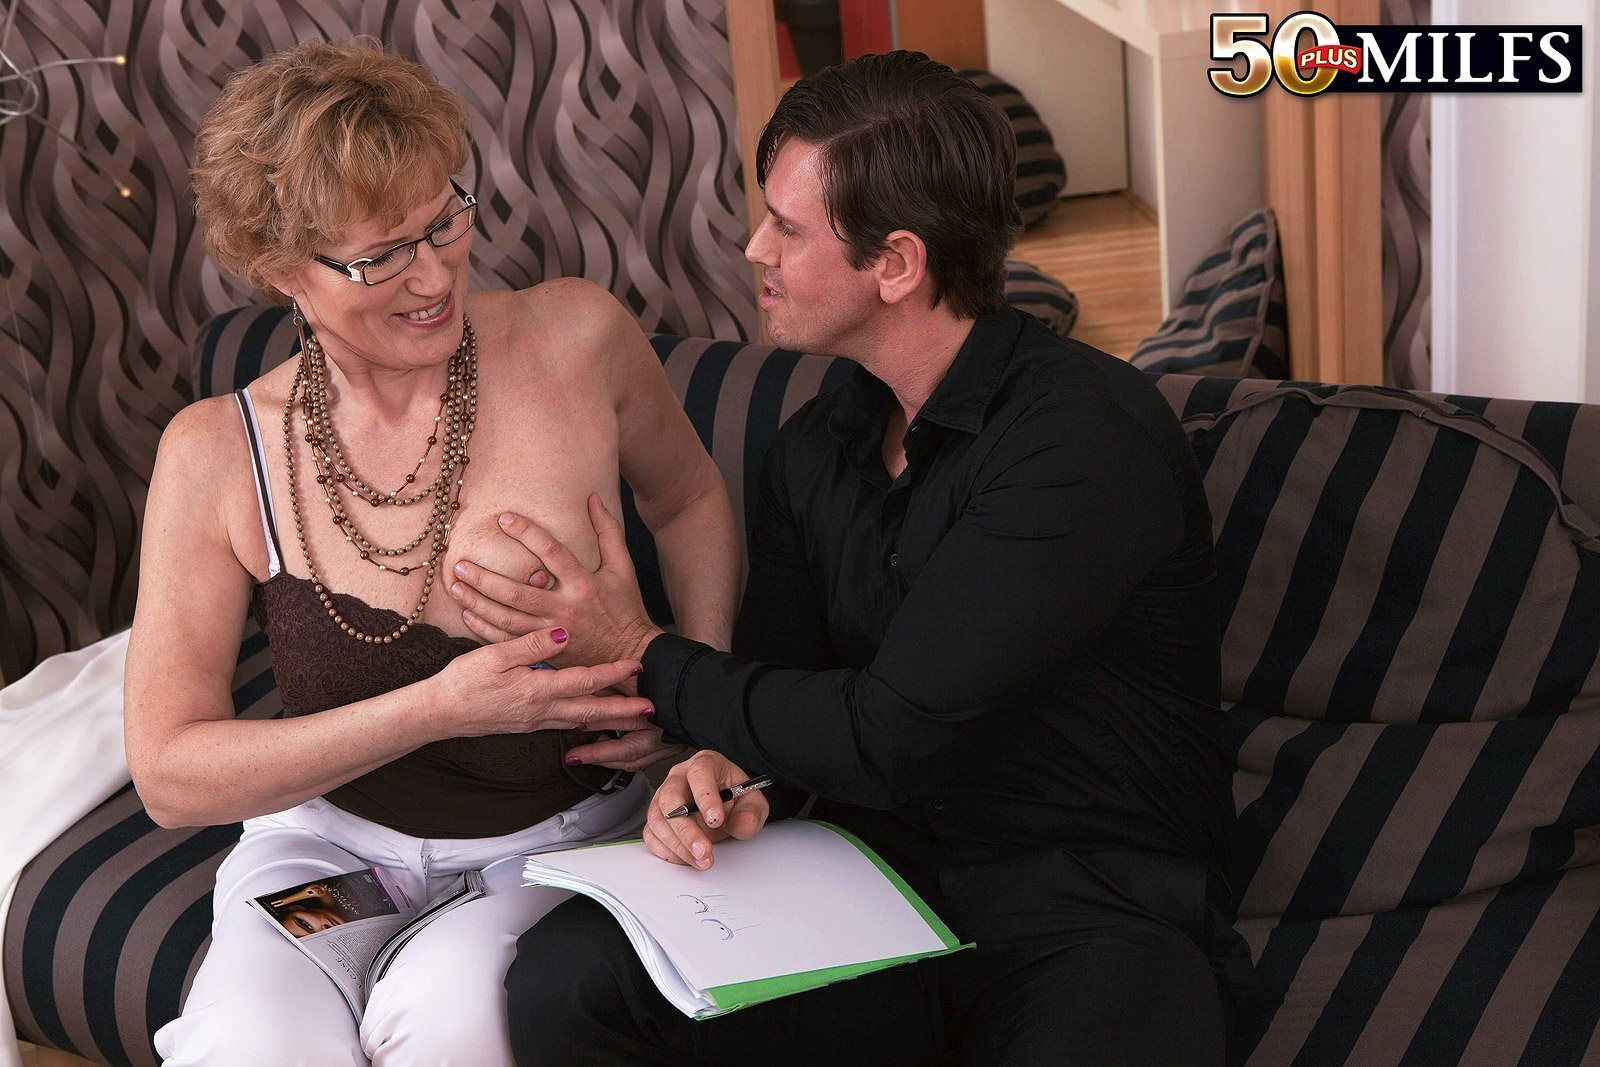 small titty mature there